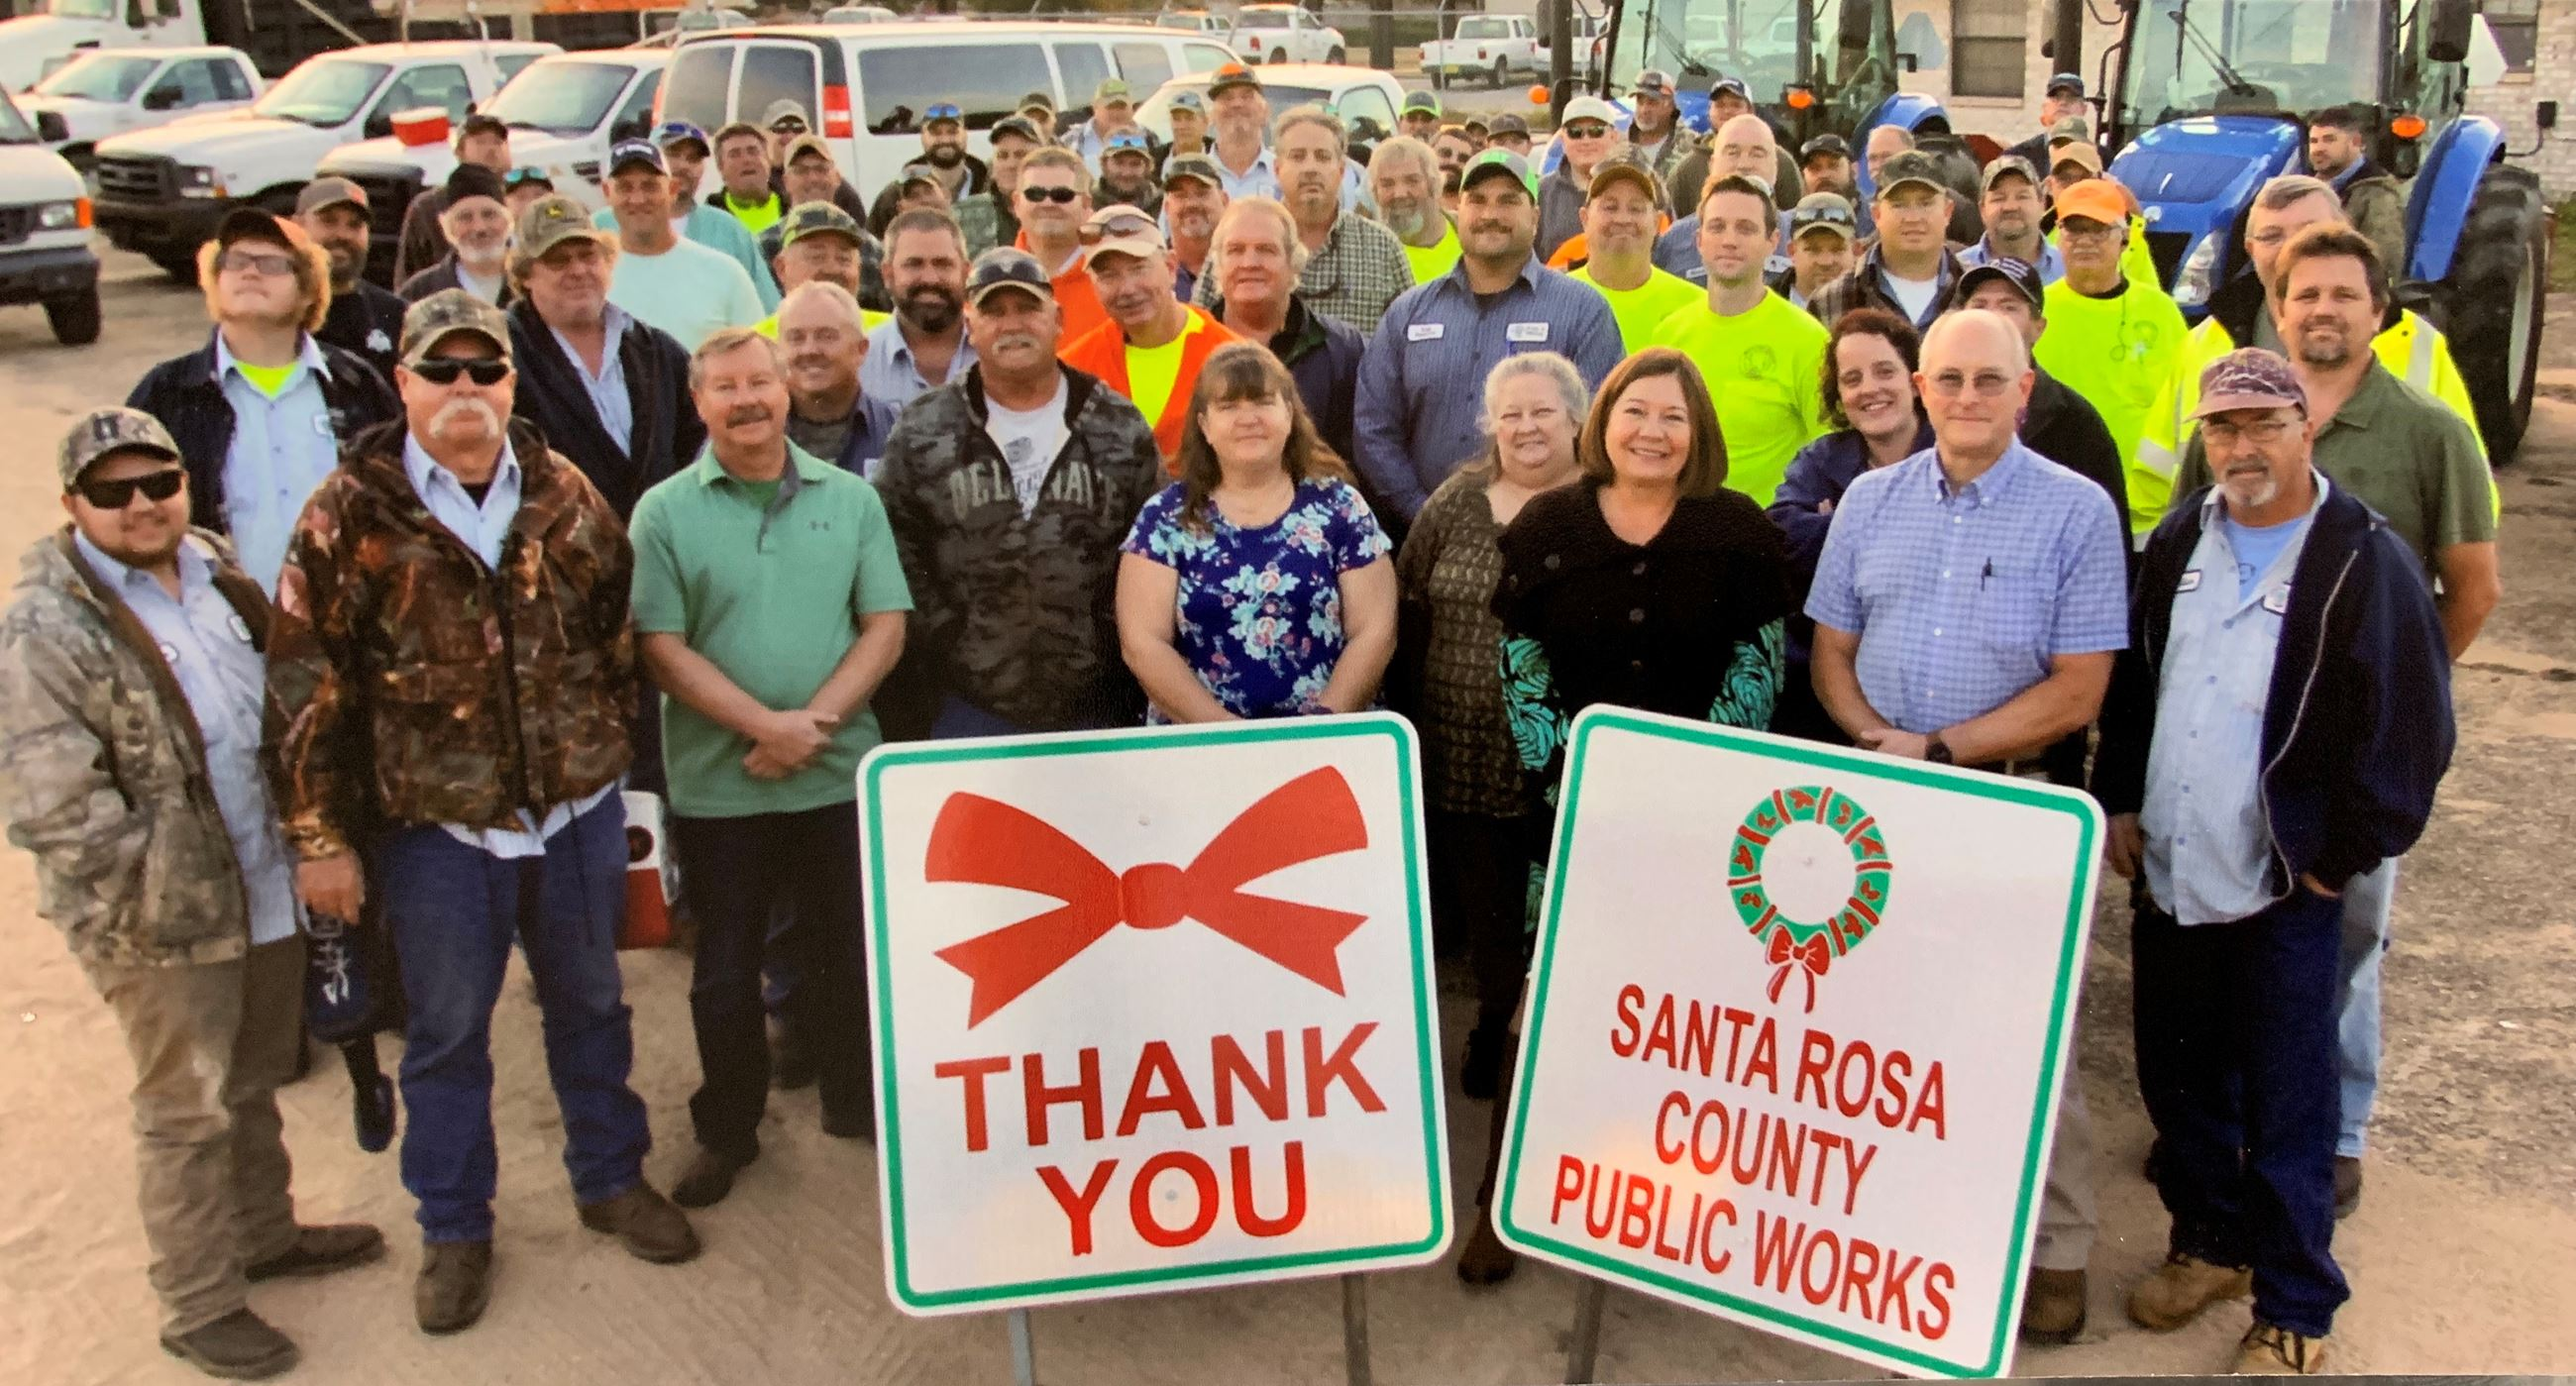 Public Works Staff Photo 2019 - Photo of 100+ smiling employees of Santa Rosa County Public Works ho